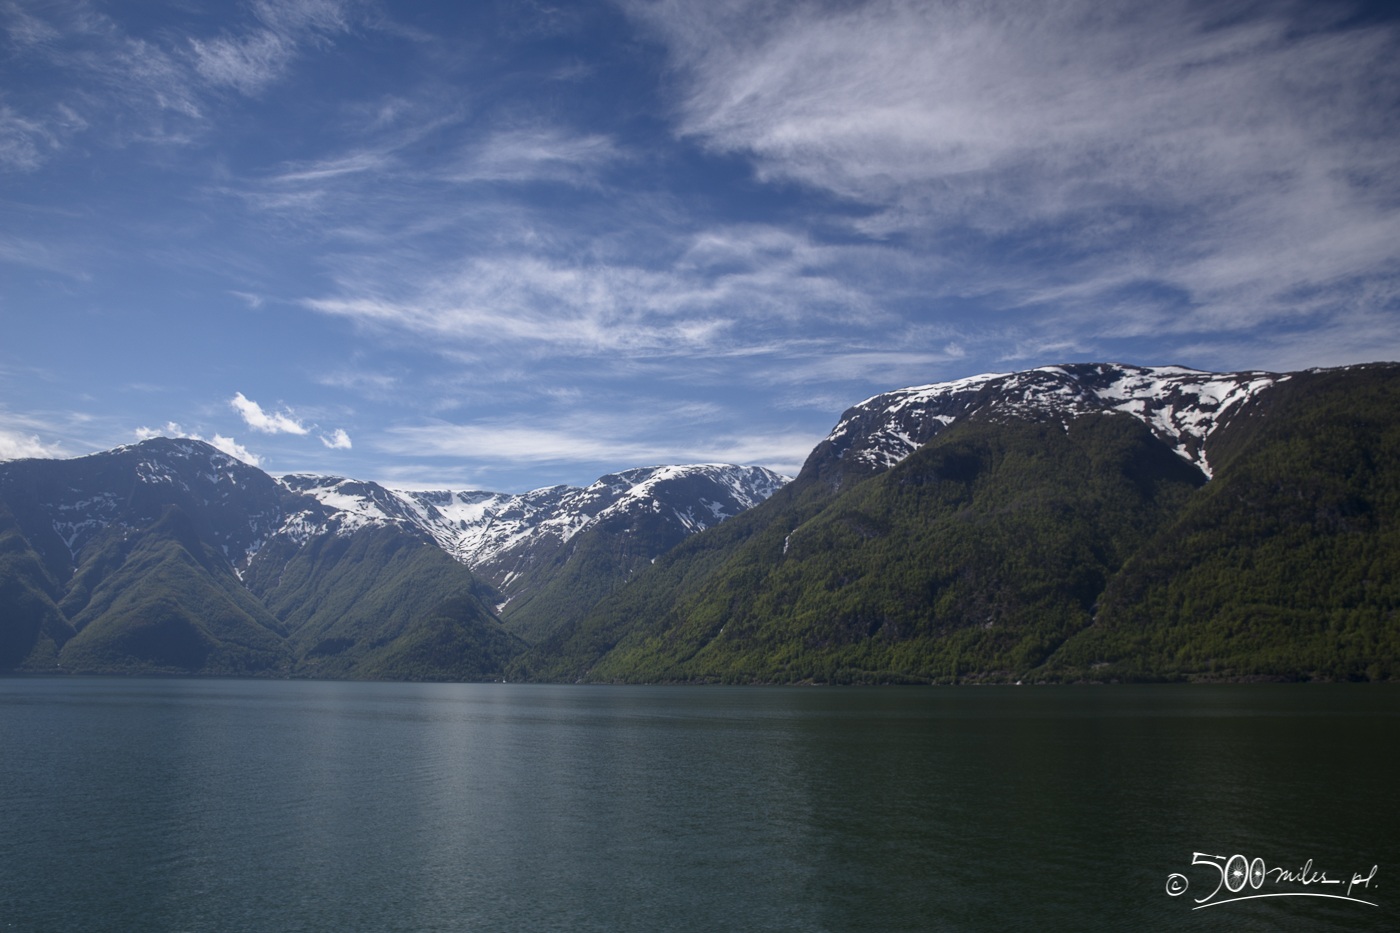 Car ferries sognefjord norway - Leikanger Norway Splendid Mix Of Green And Snow In Sognefjord Norway